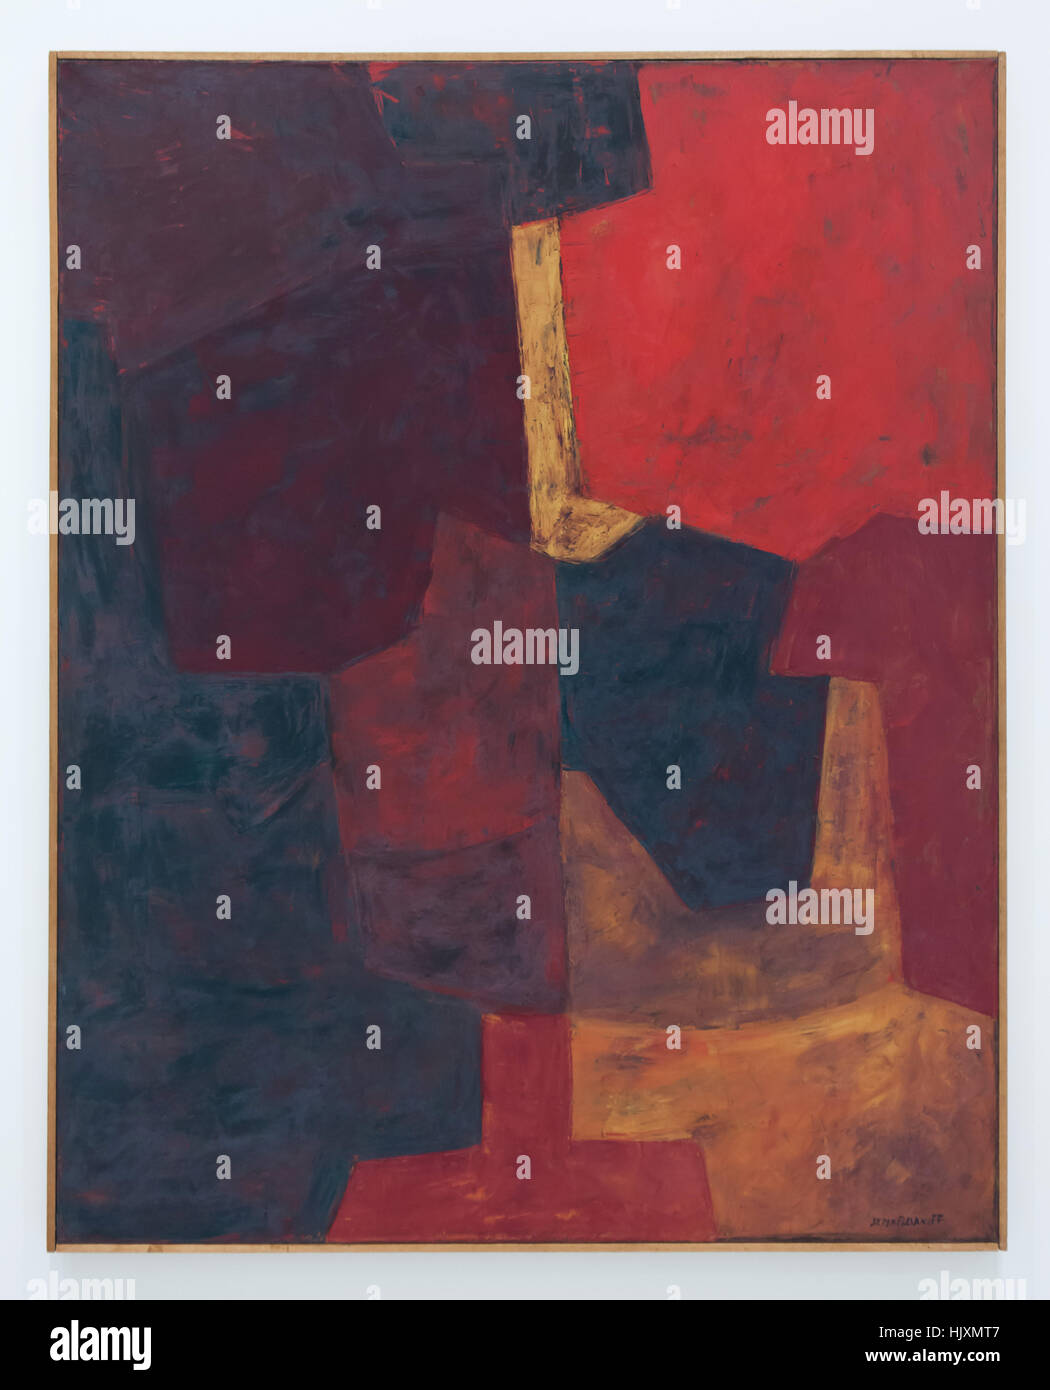 Painting Red Composition (1963) by Russian-French modernist painter Serge Poliakoff on display in the Musee d'Unterlinden - Stock Image